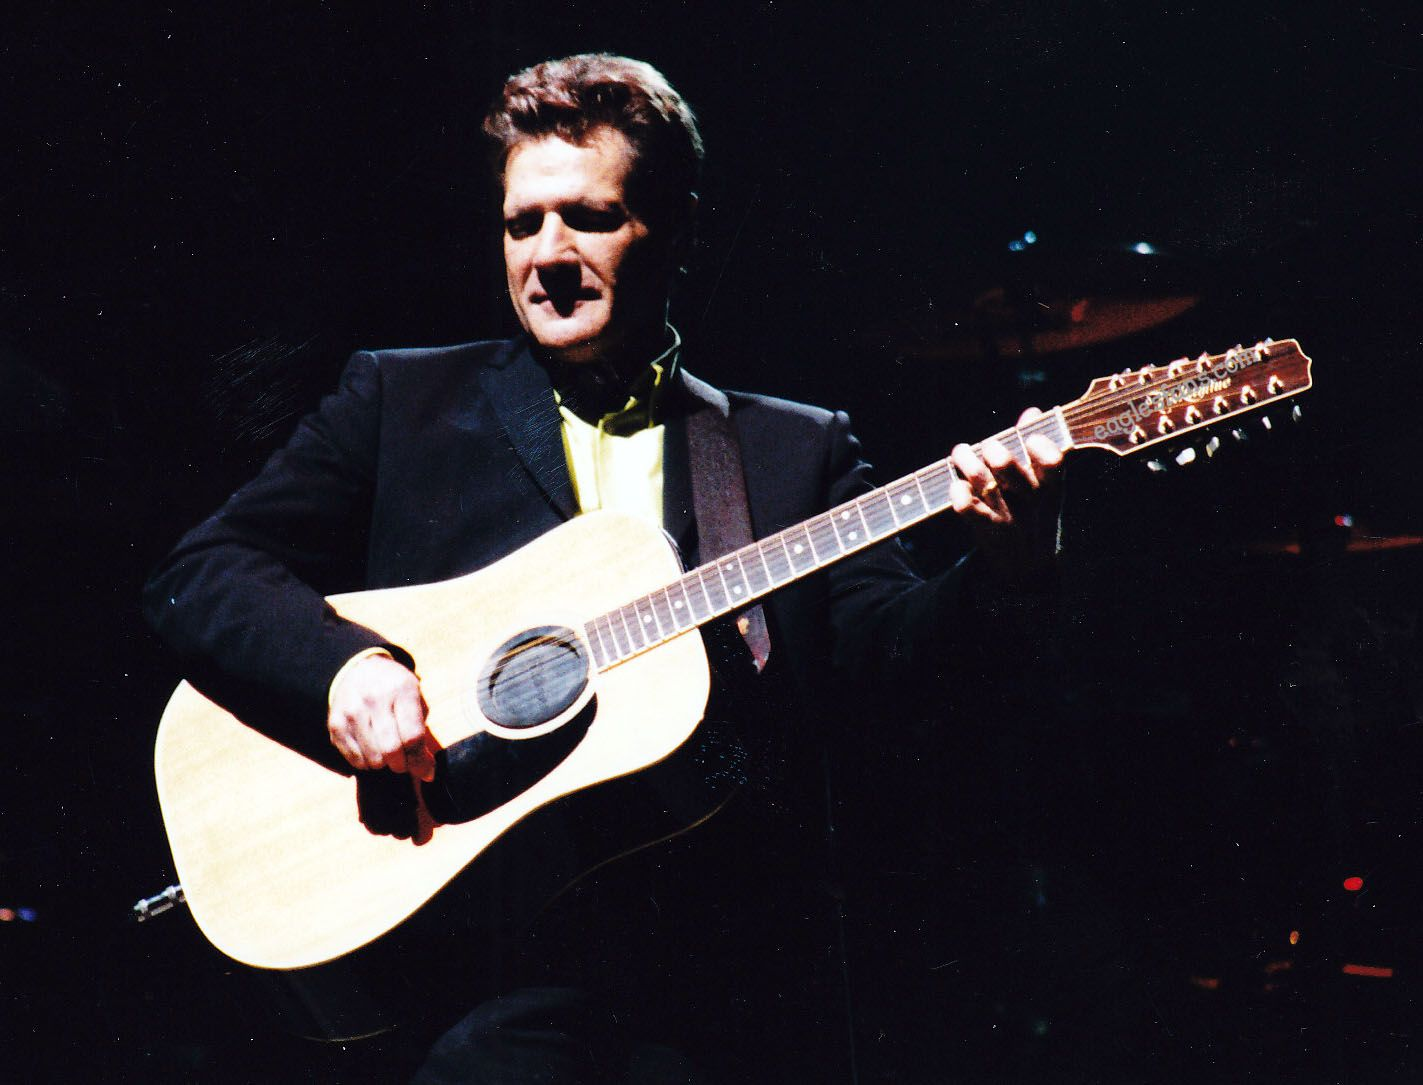 Glenn Frey at Earl's Court in London 2001 Photo by Lisa Mielke Curated by eaglesfans.com